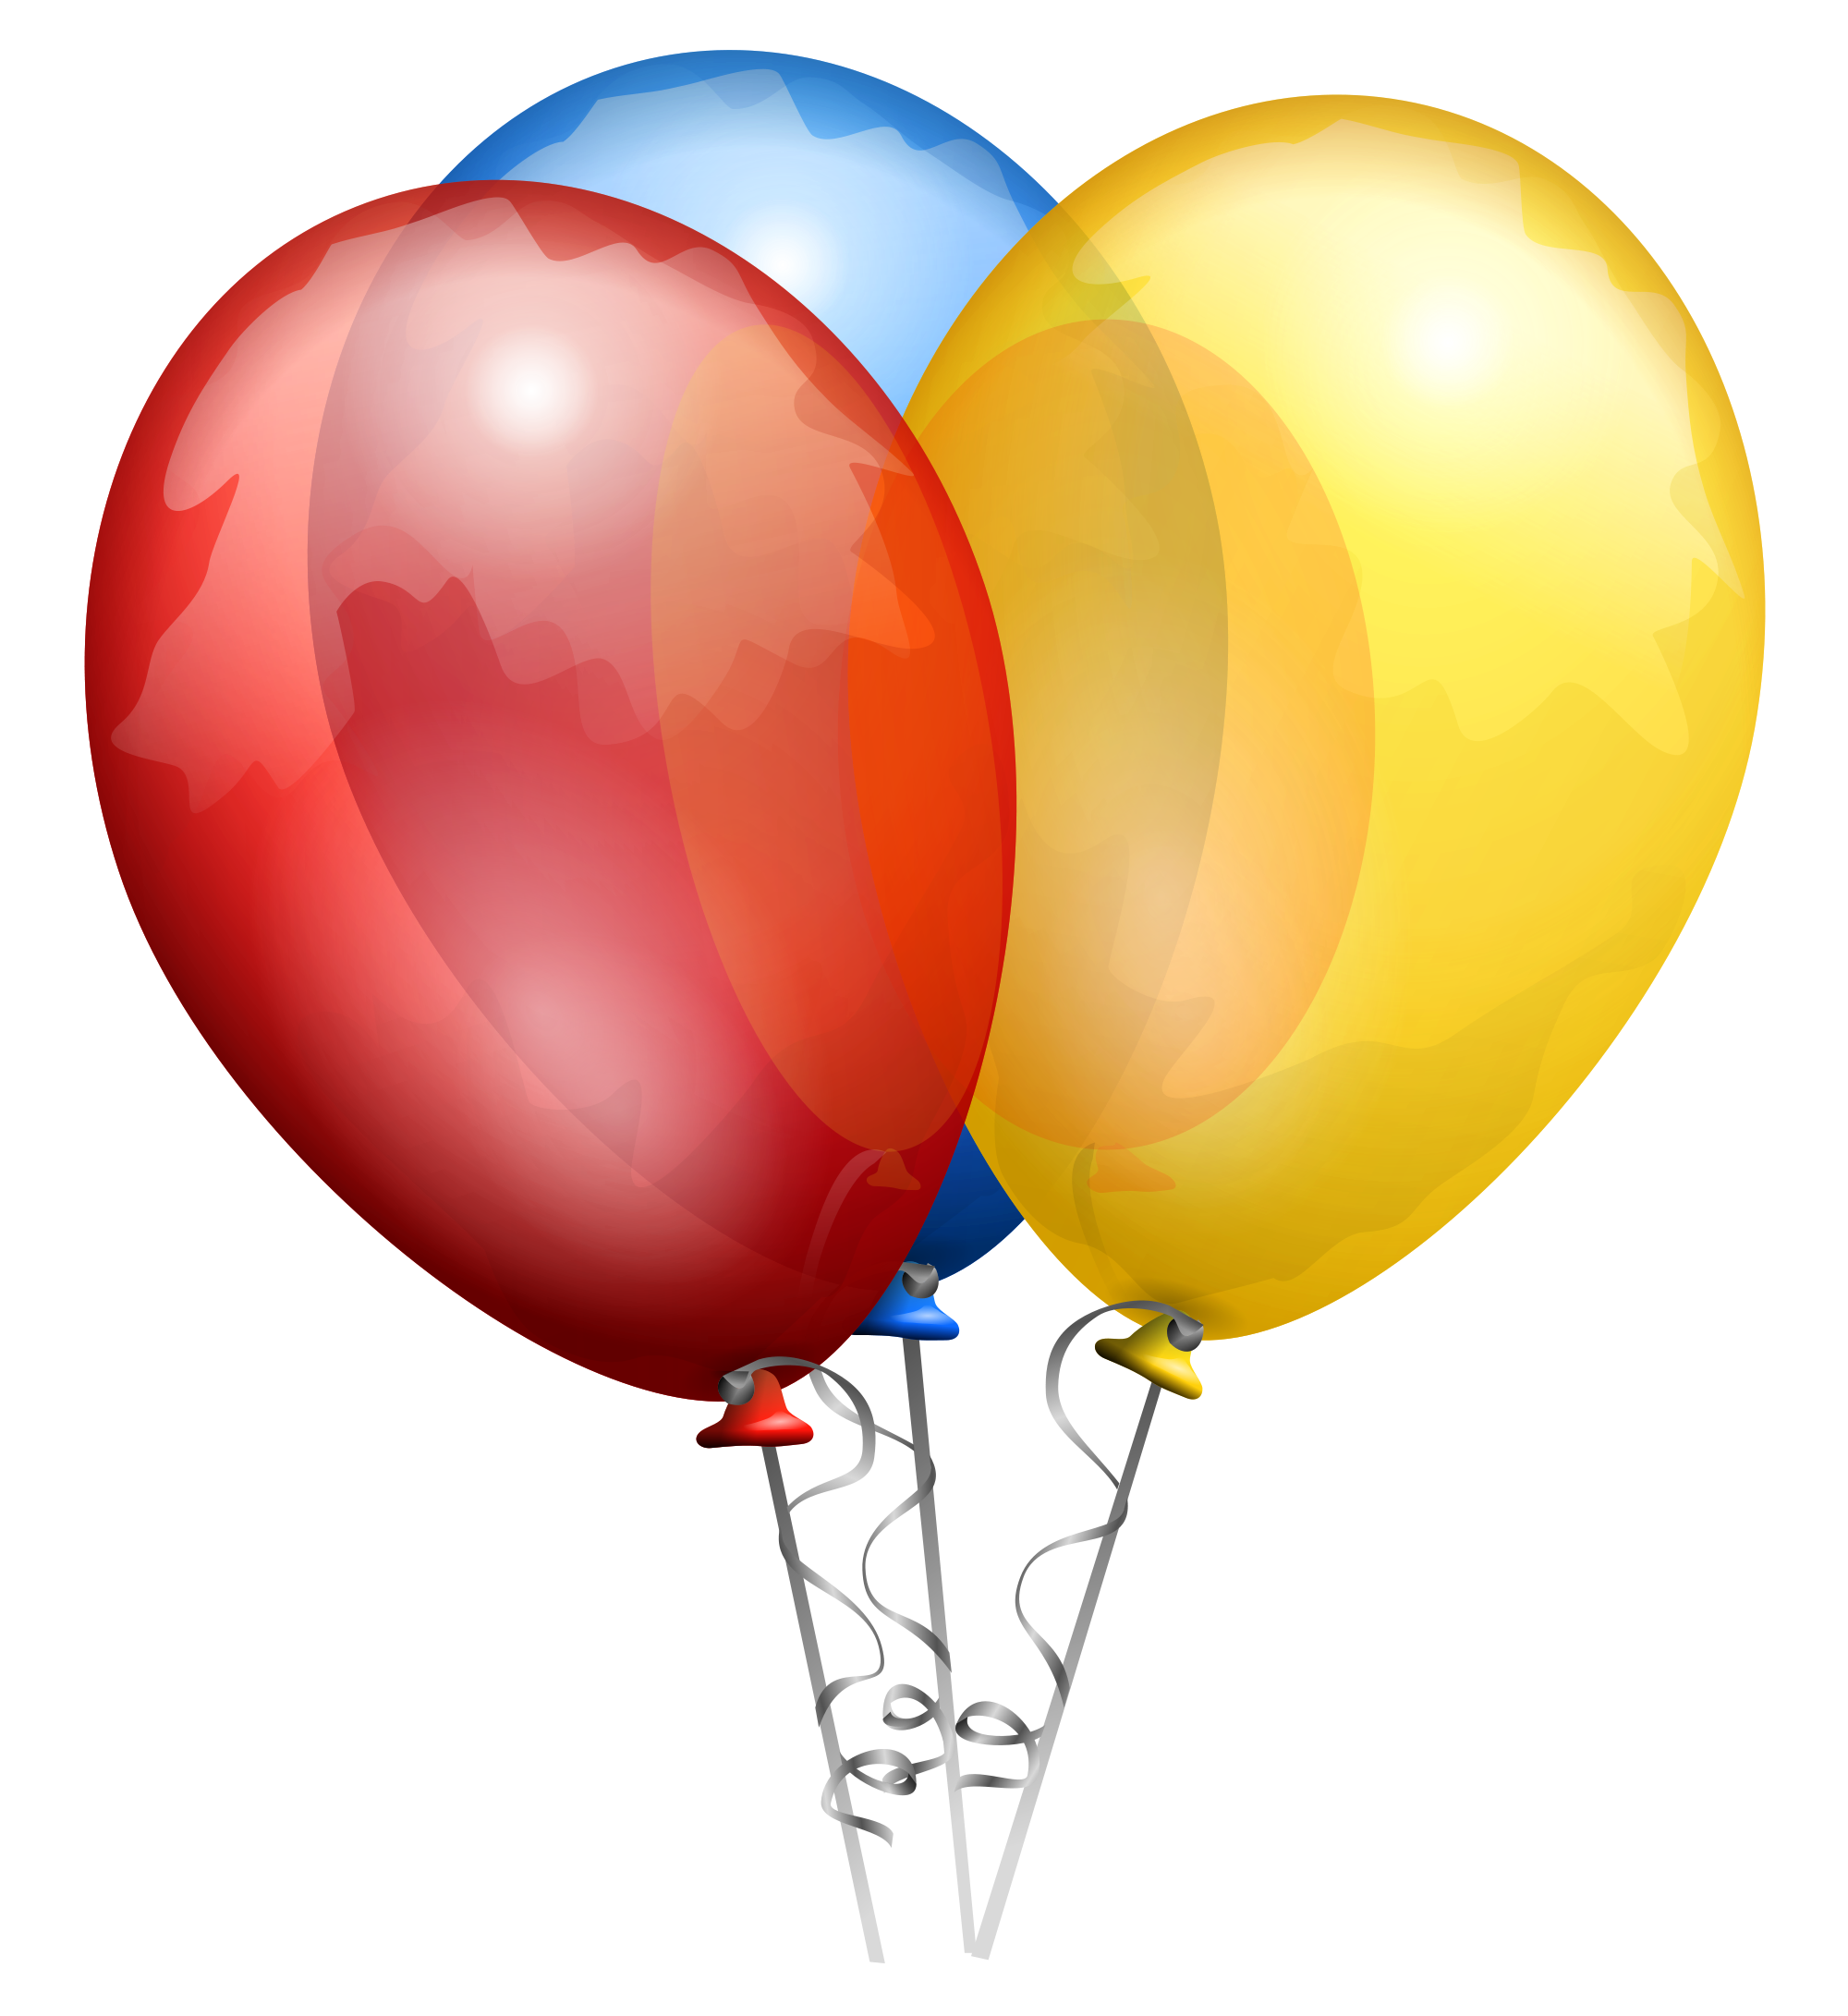 Halloween party balloons clipart banner free library File:Balloons-aj.svg - Wikimedia Commons banner free library